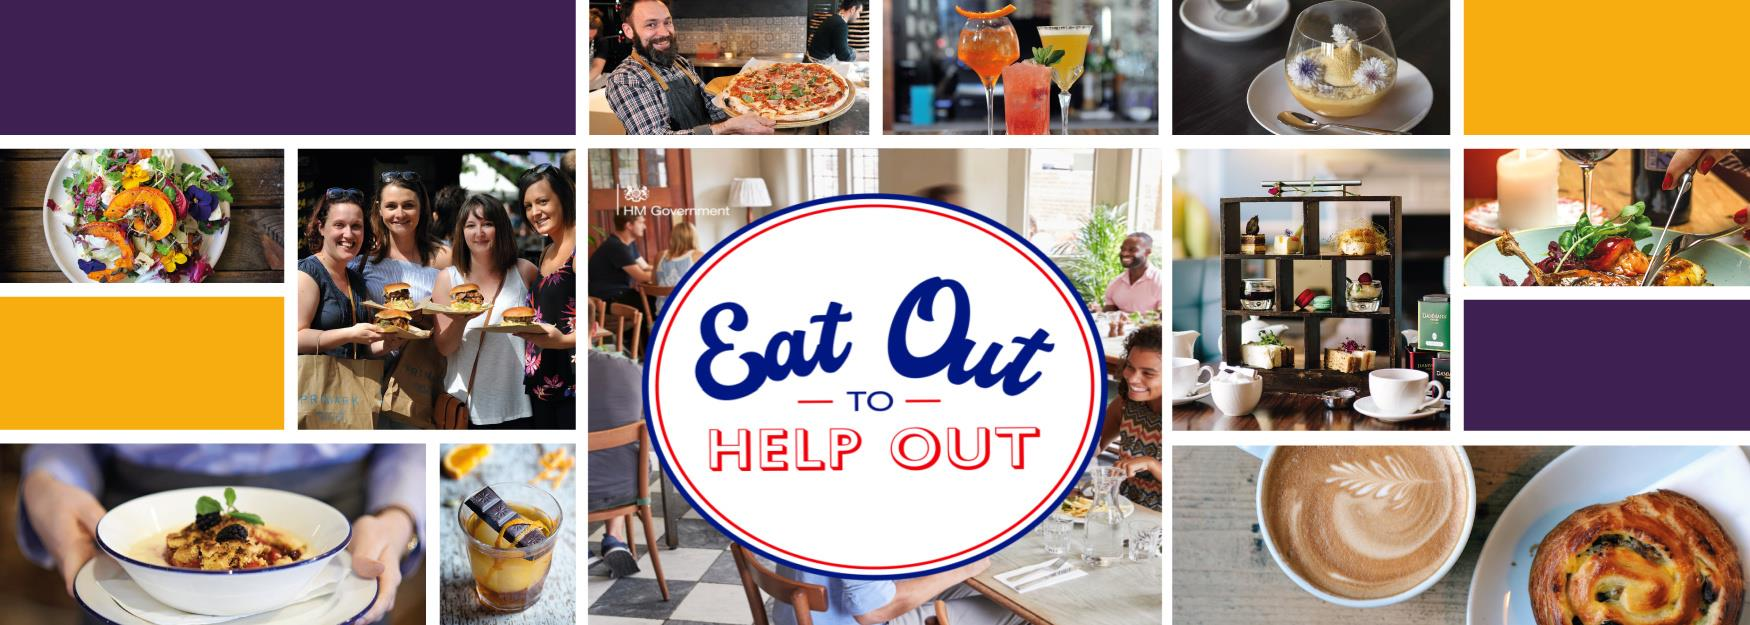 Eat Out To Help Out Restaurants in Cheltenham  collage of images